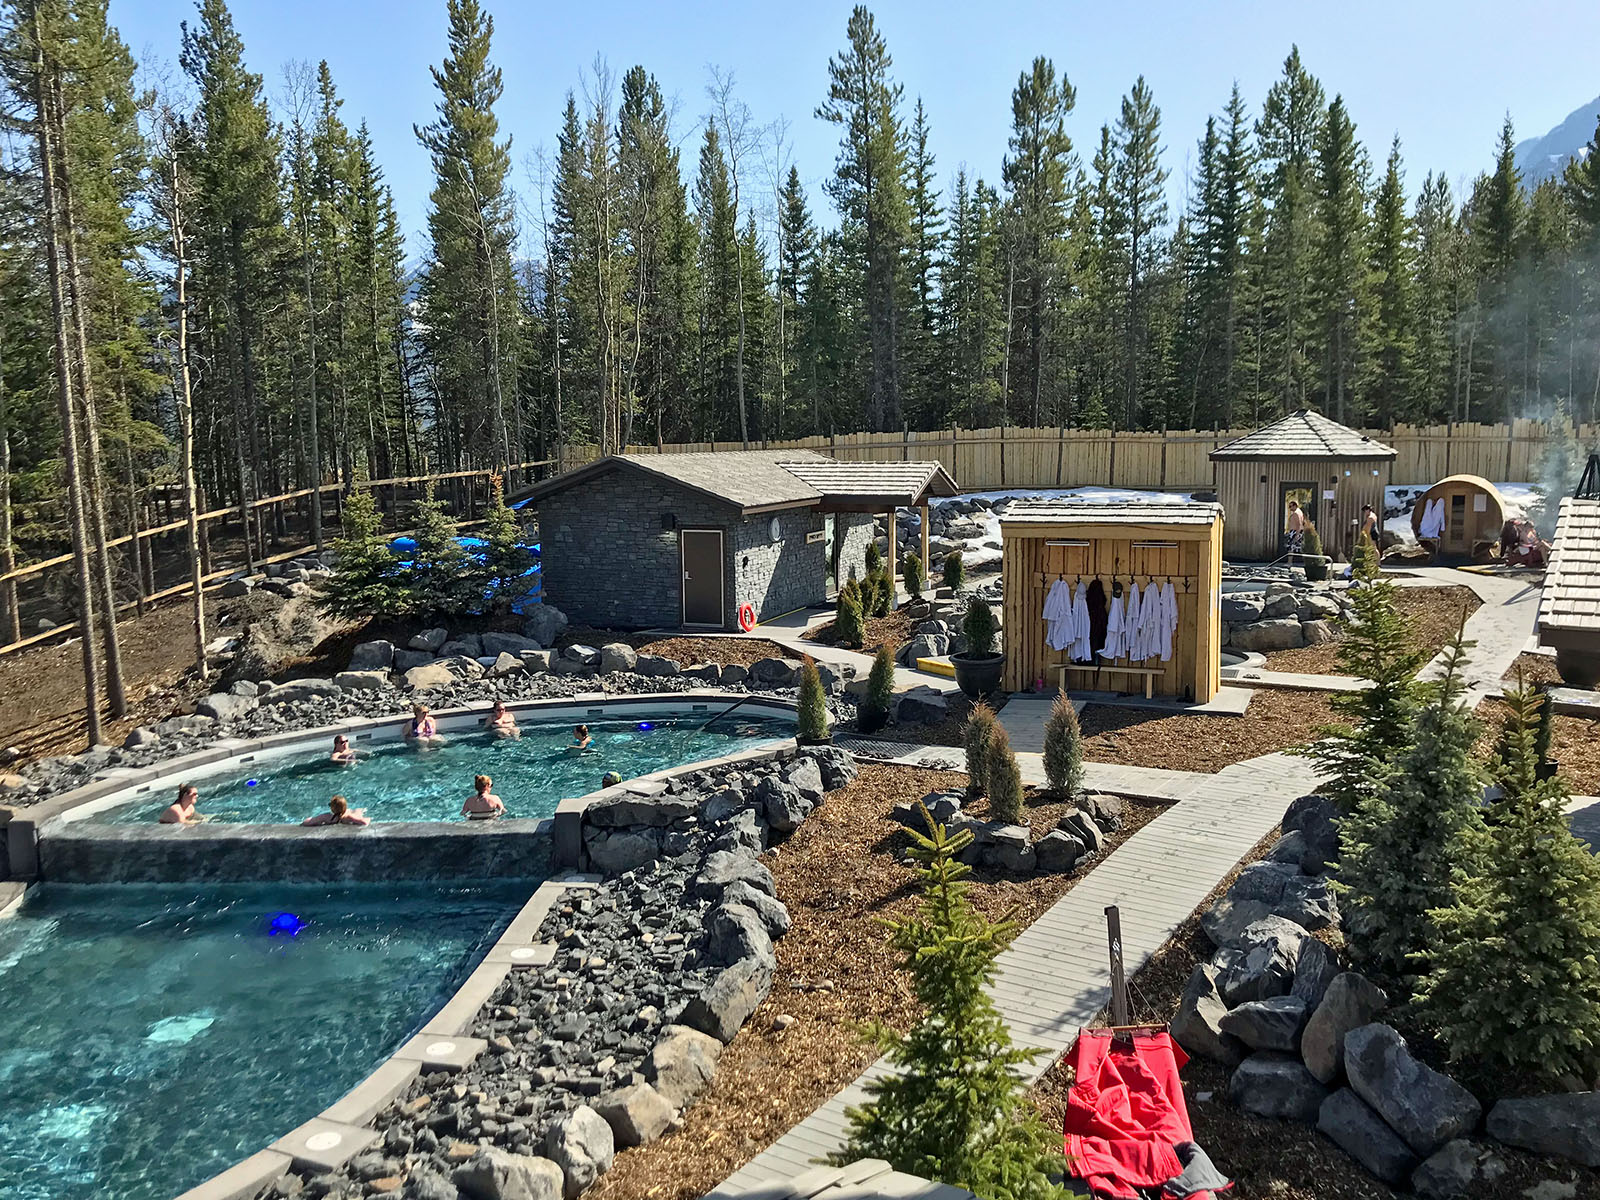 A view of the new Kananaskis Nordic Spa